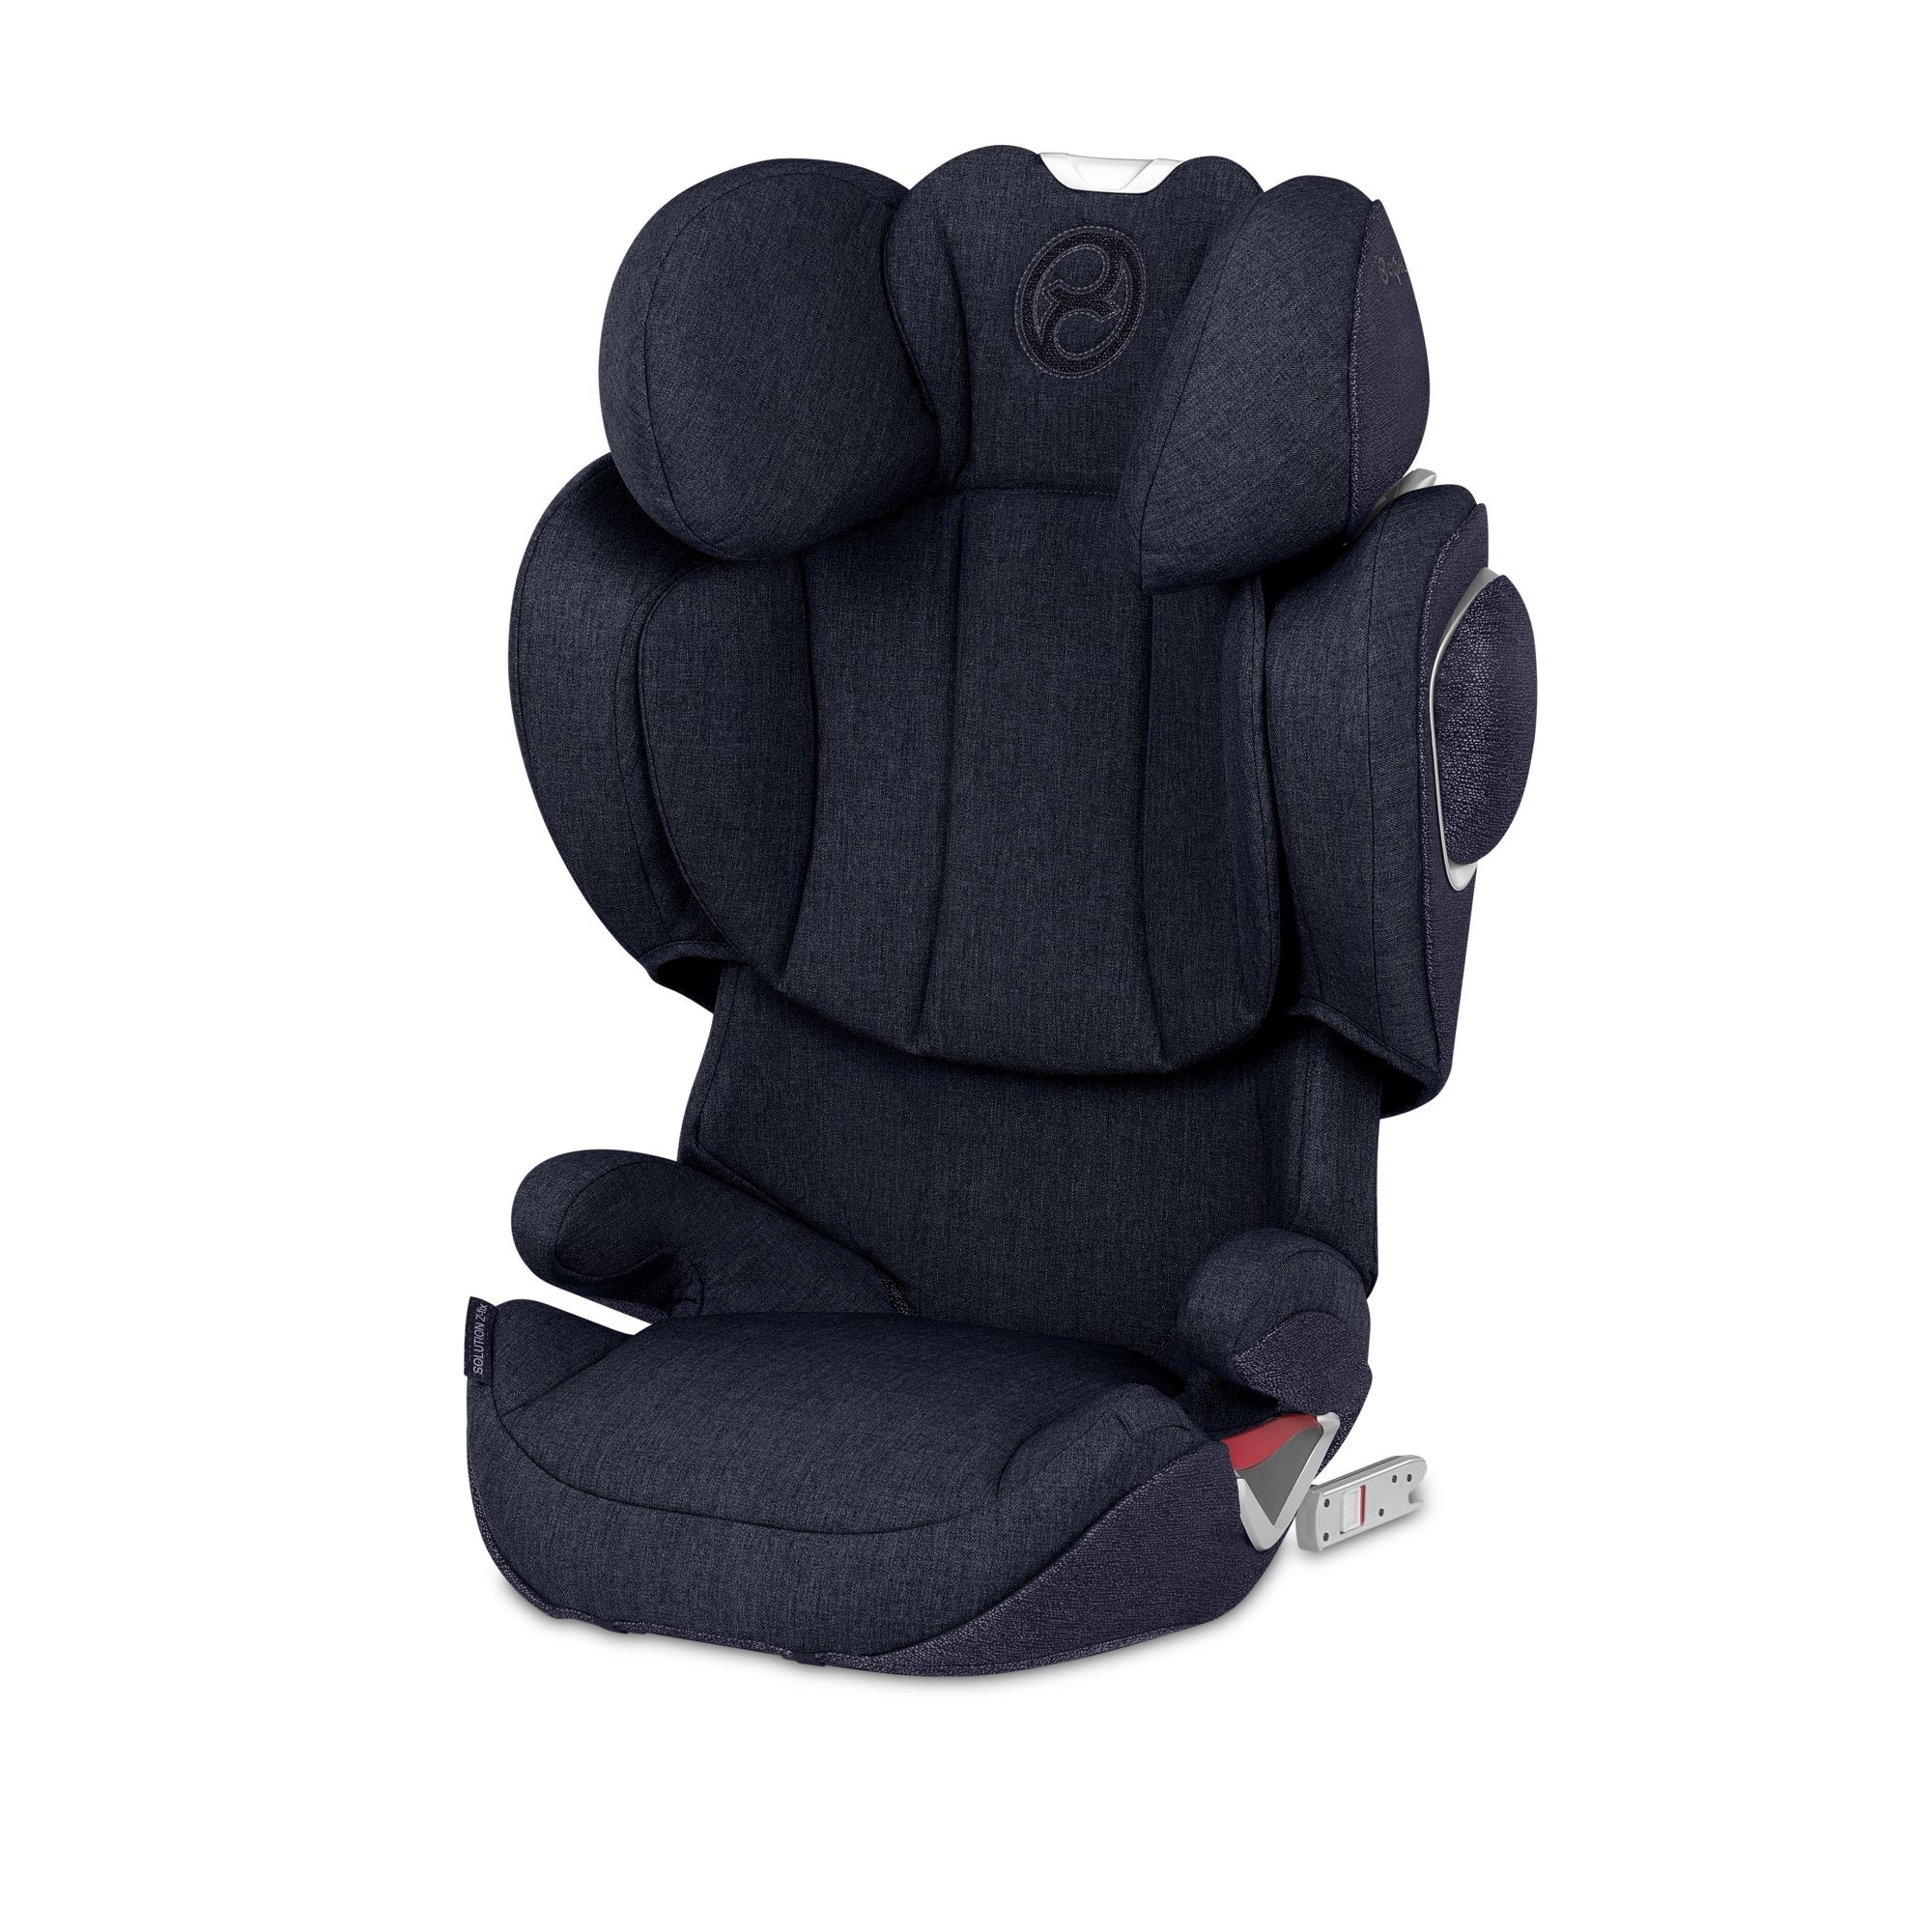 Автокресло Cybex Solution Z-fix Midnight Blue, синий